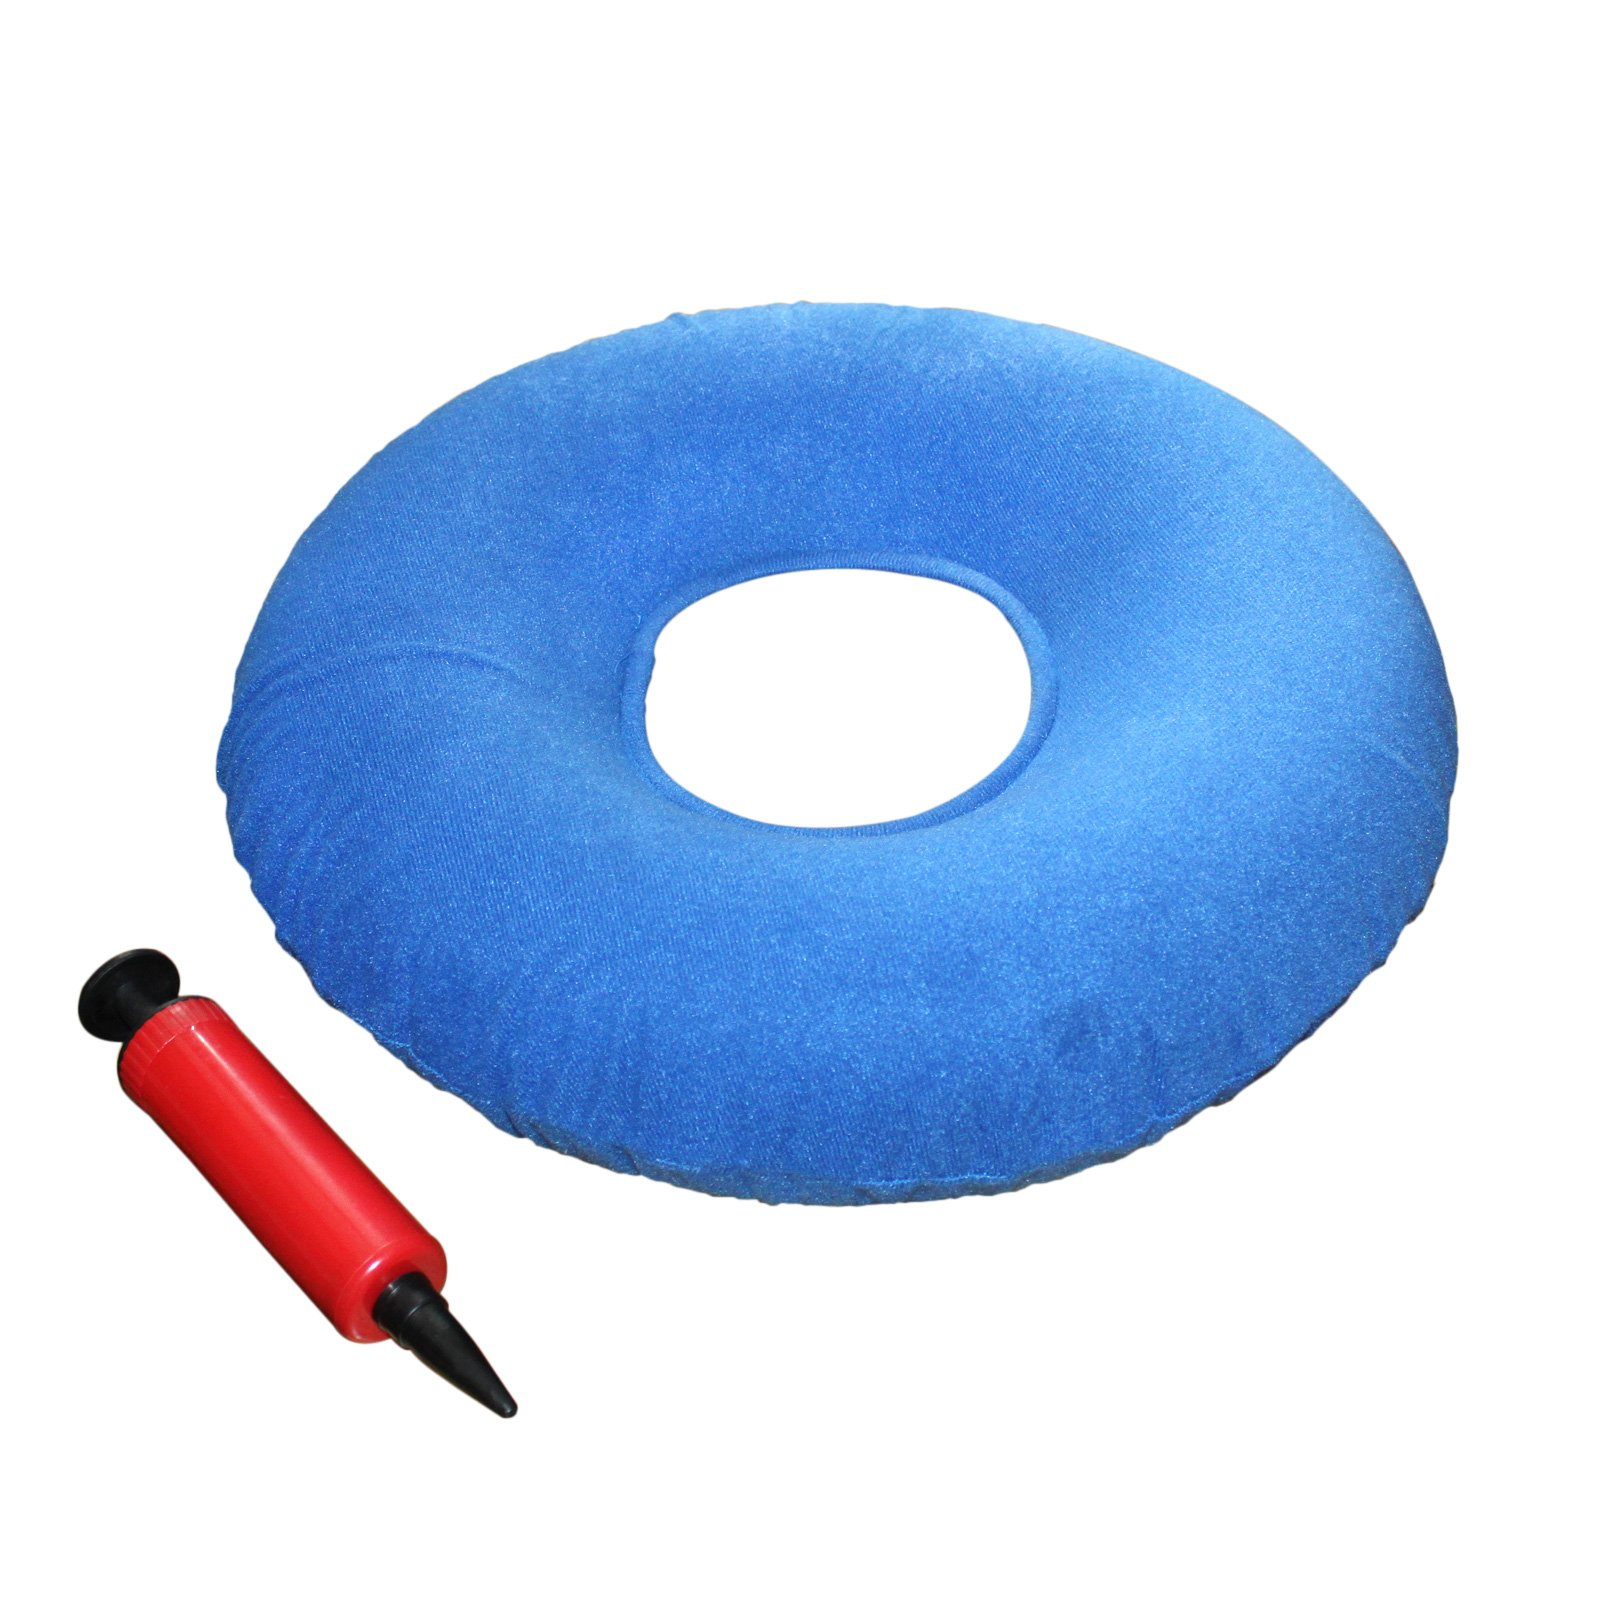 Kovira Inflatable 15'' Coccyx Donut Cushion Pillow/Doughnut Pillow with Pump & Travel Bag - Lumbar Support for Hemorrhoids, Pregnancy, Tailbone Pain, Prostate & Sores - Use in the Home, Car & Office by Kovira